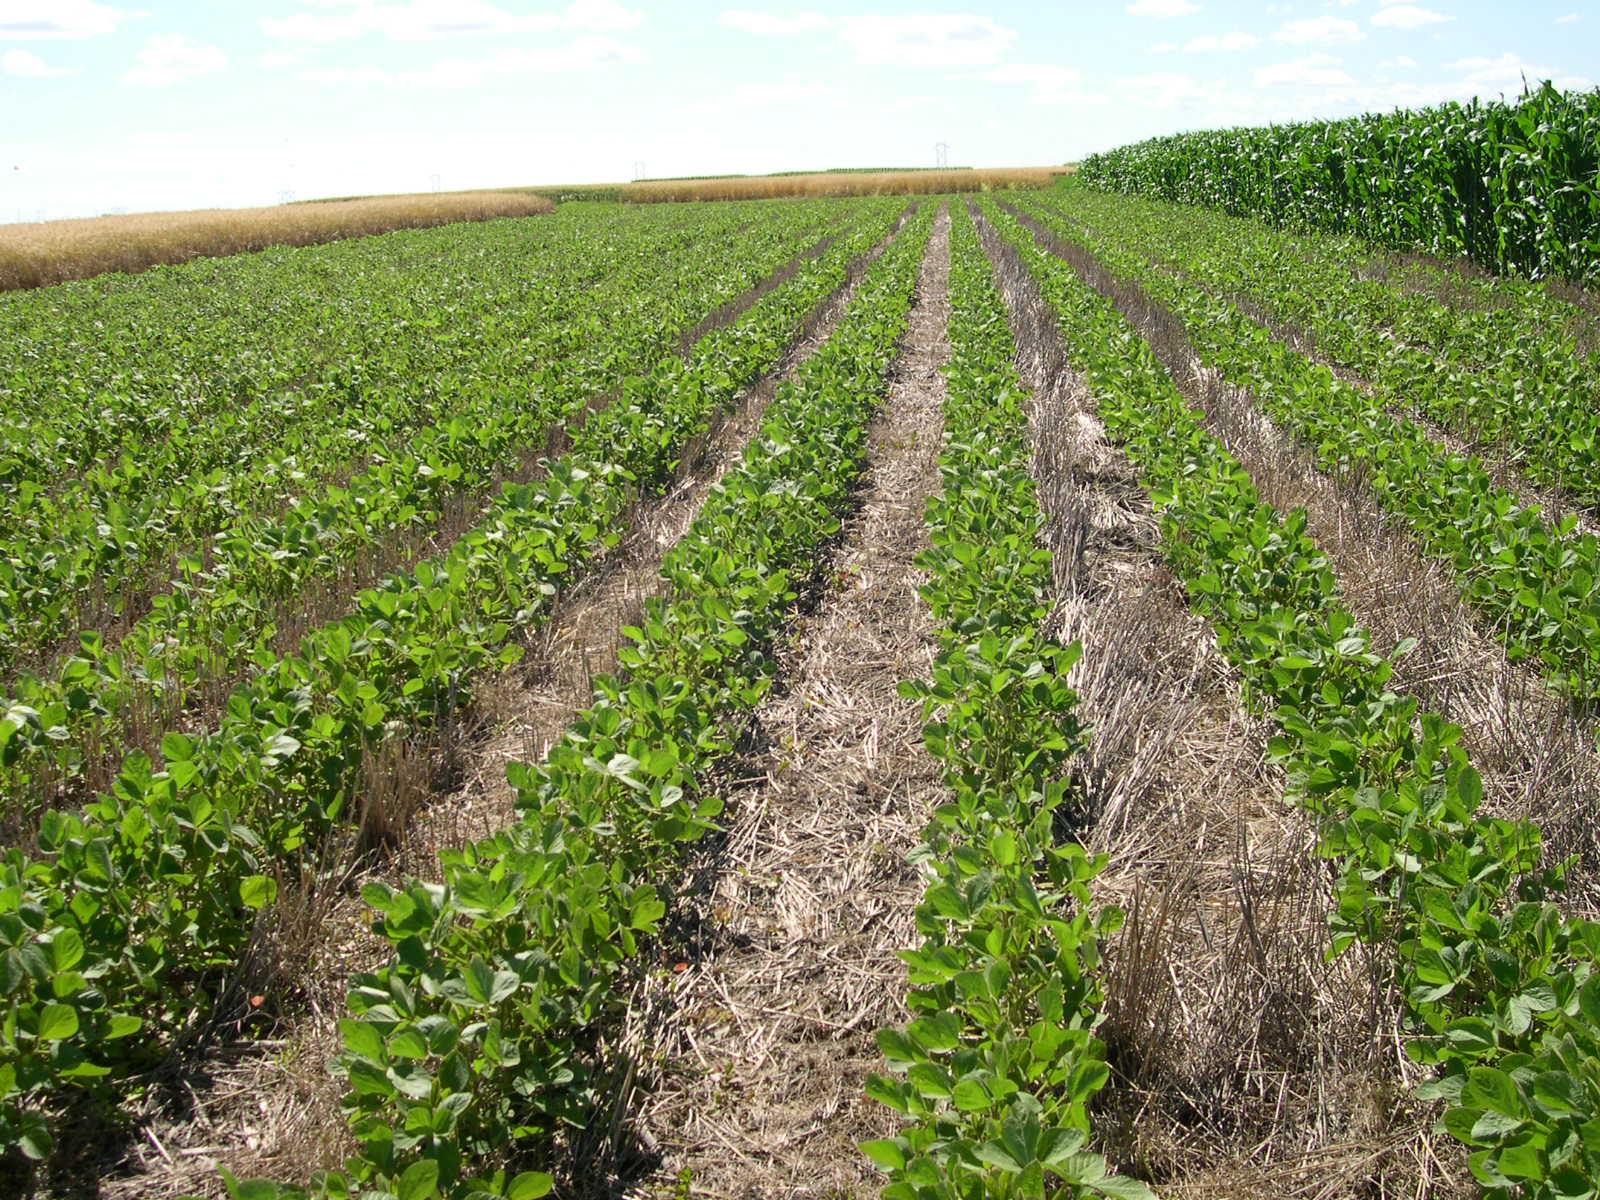 Soybeans are among the nontraditional sources of forage that producers are thinking about using this year for livestock feed. (NDSU photo)